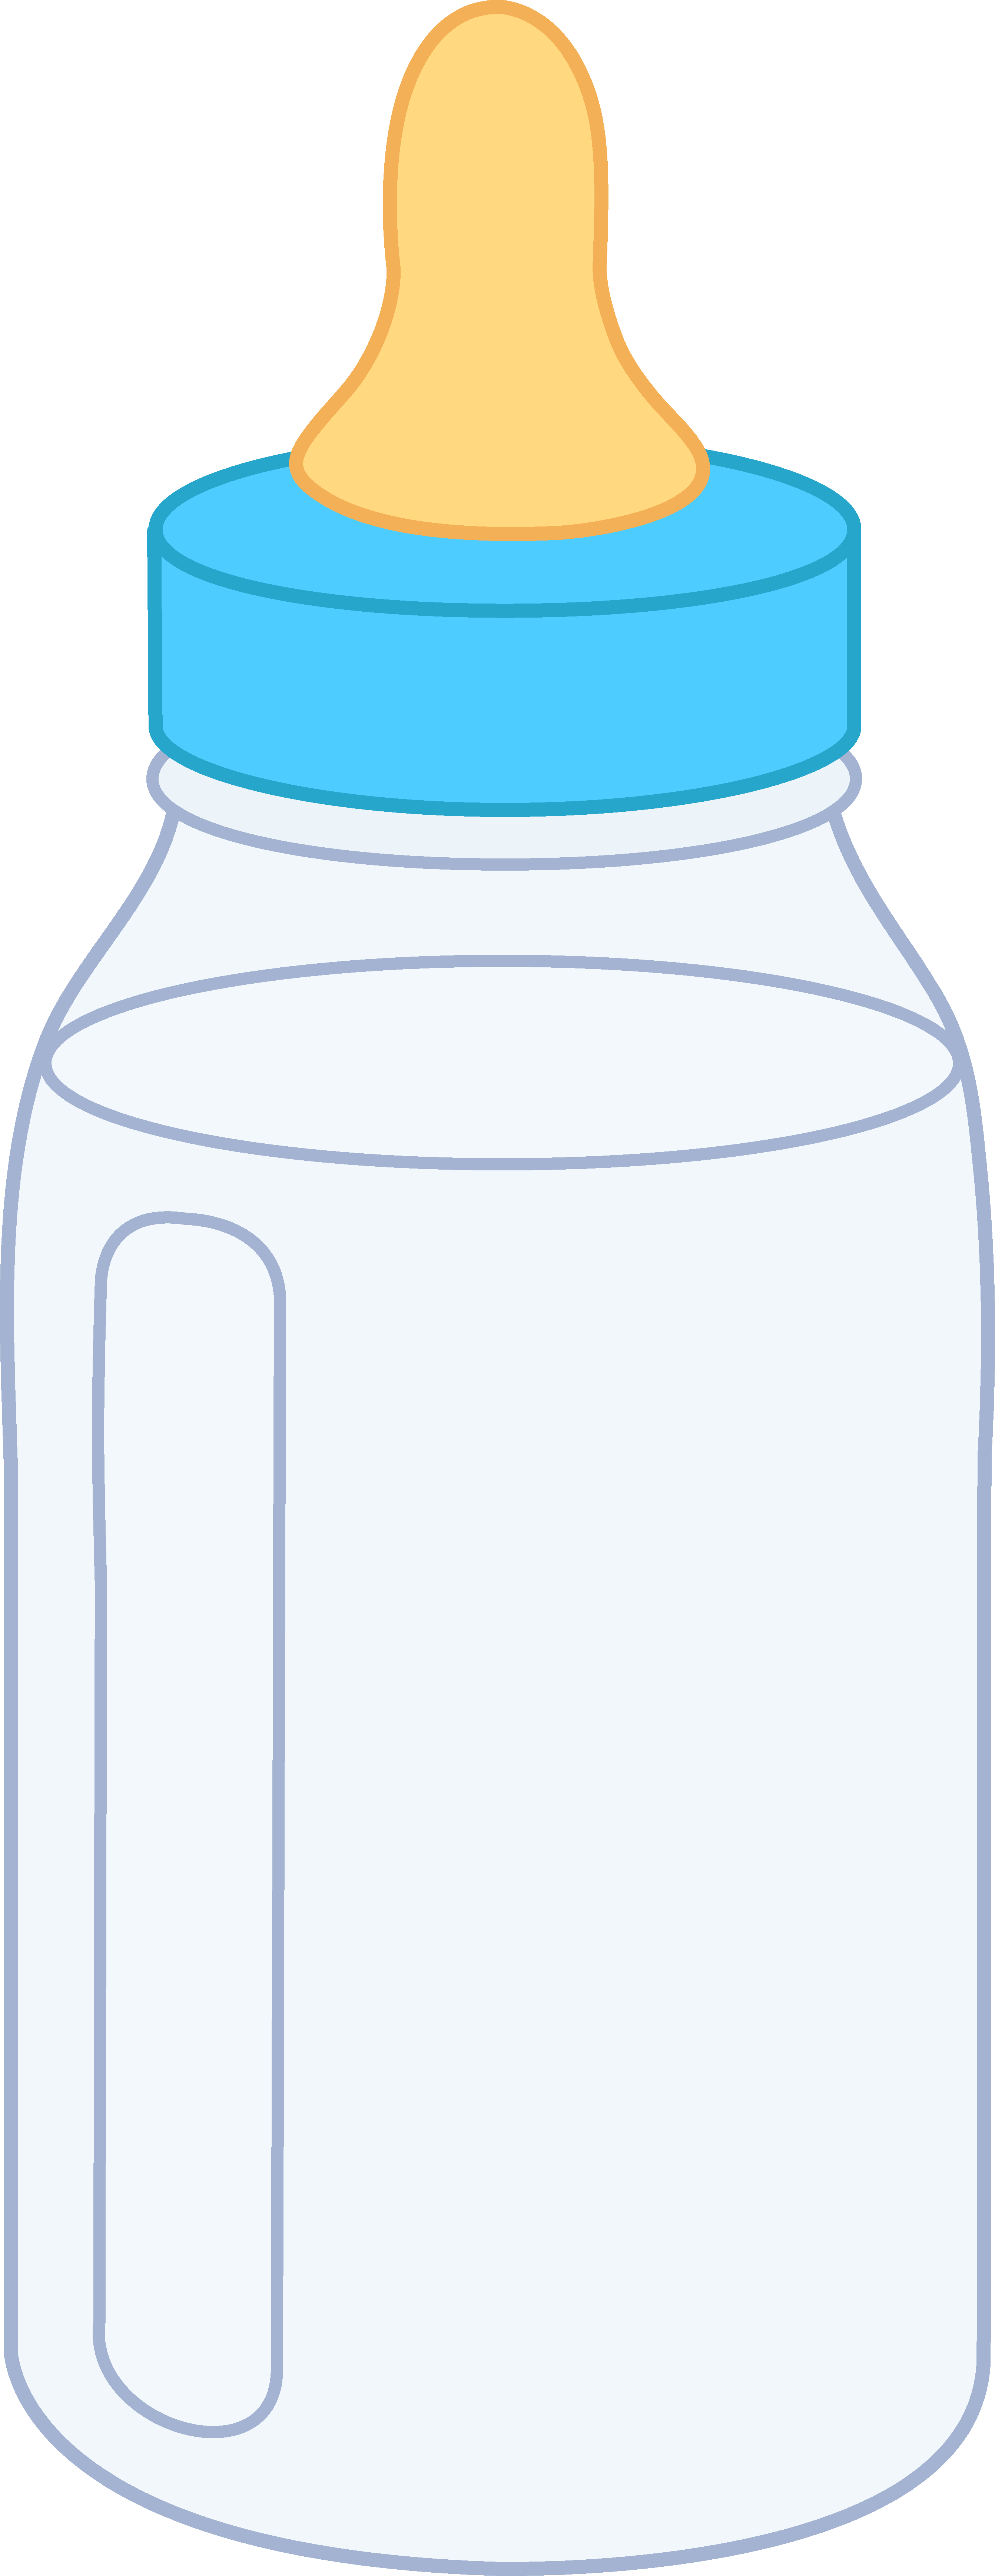 Baby Bottles Clipart - Cliparts.co